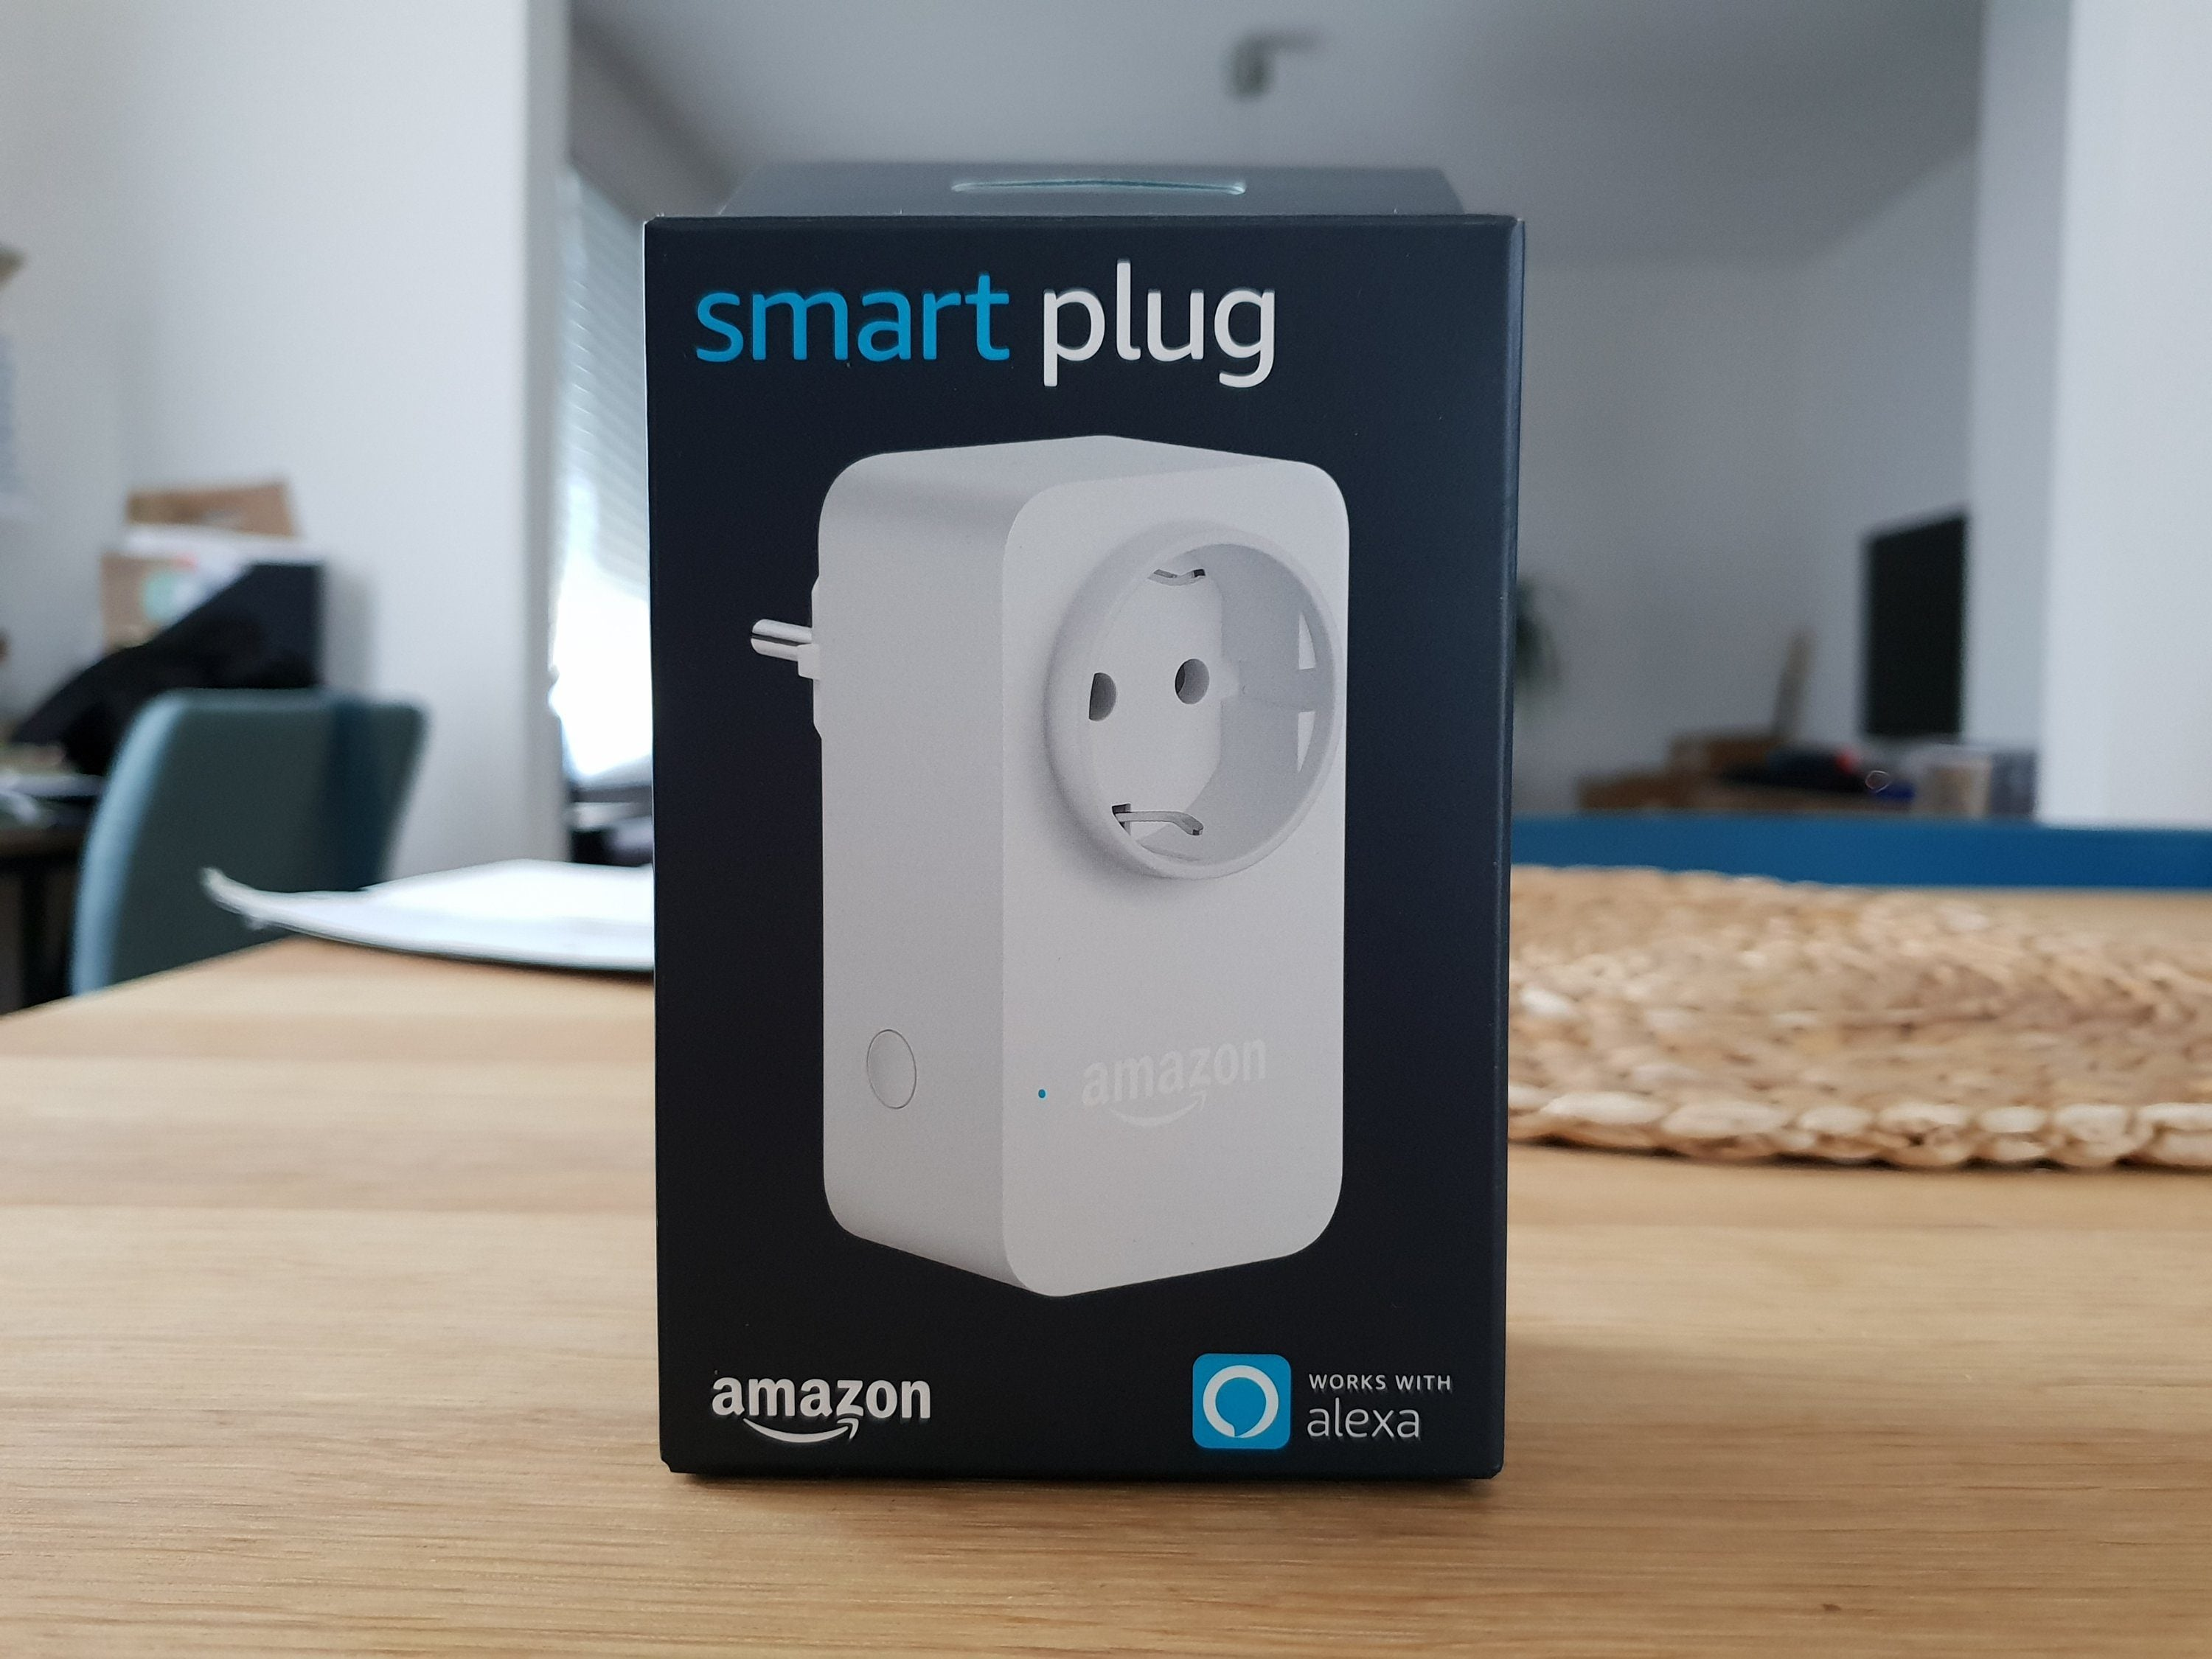 Amazon Smart Plug WLAN-Steckdose im Test 19